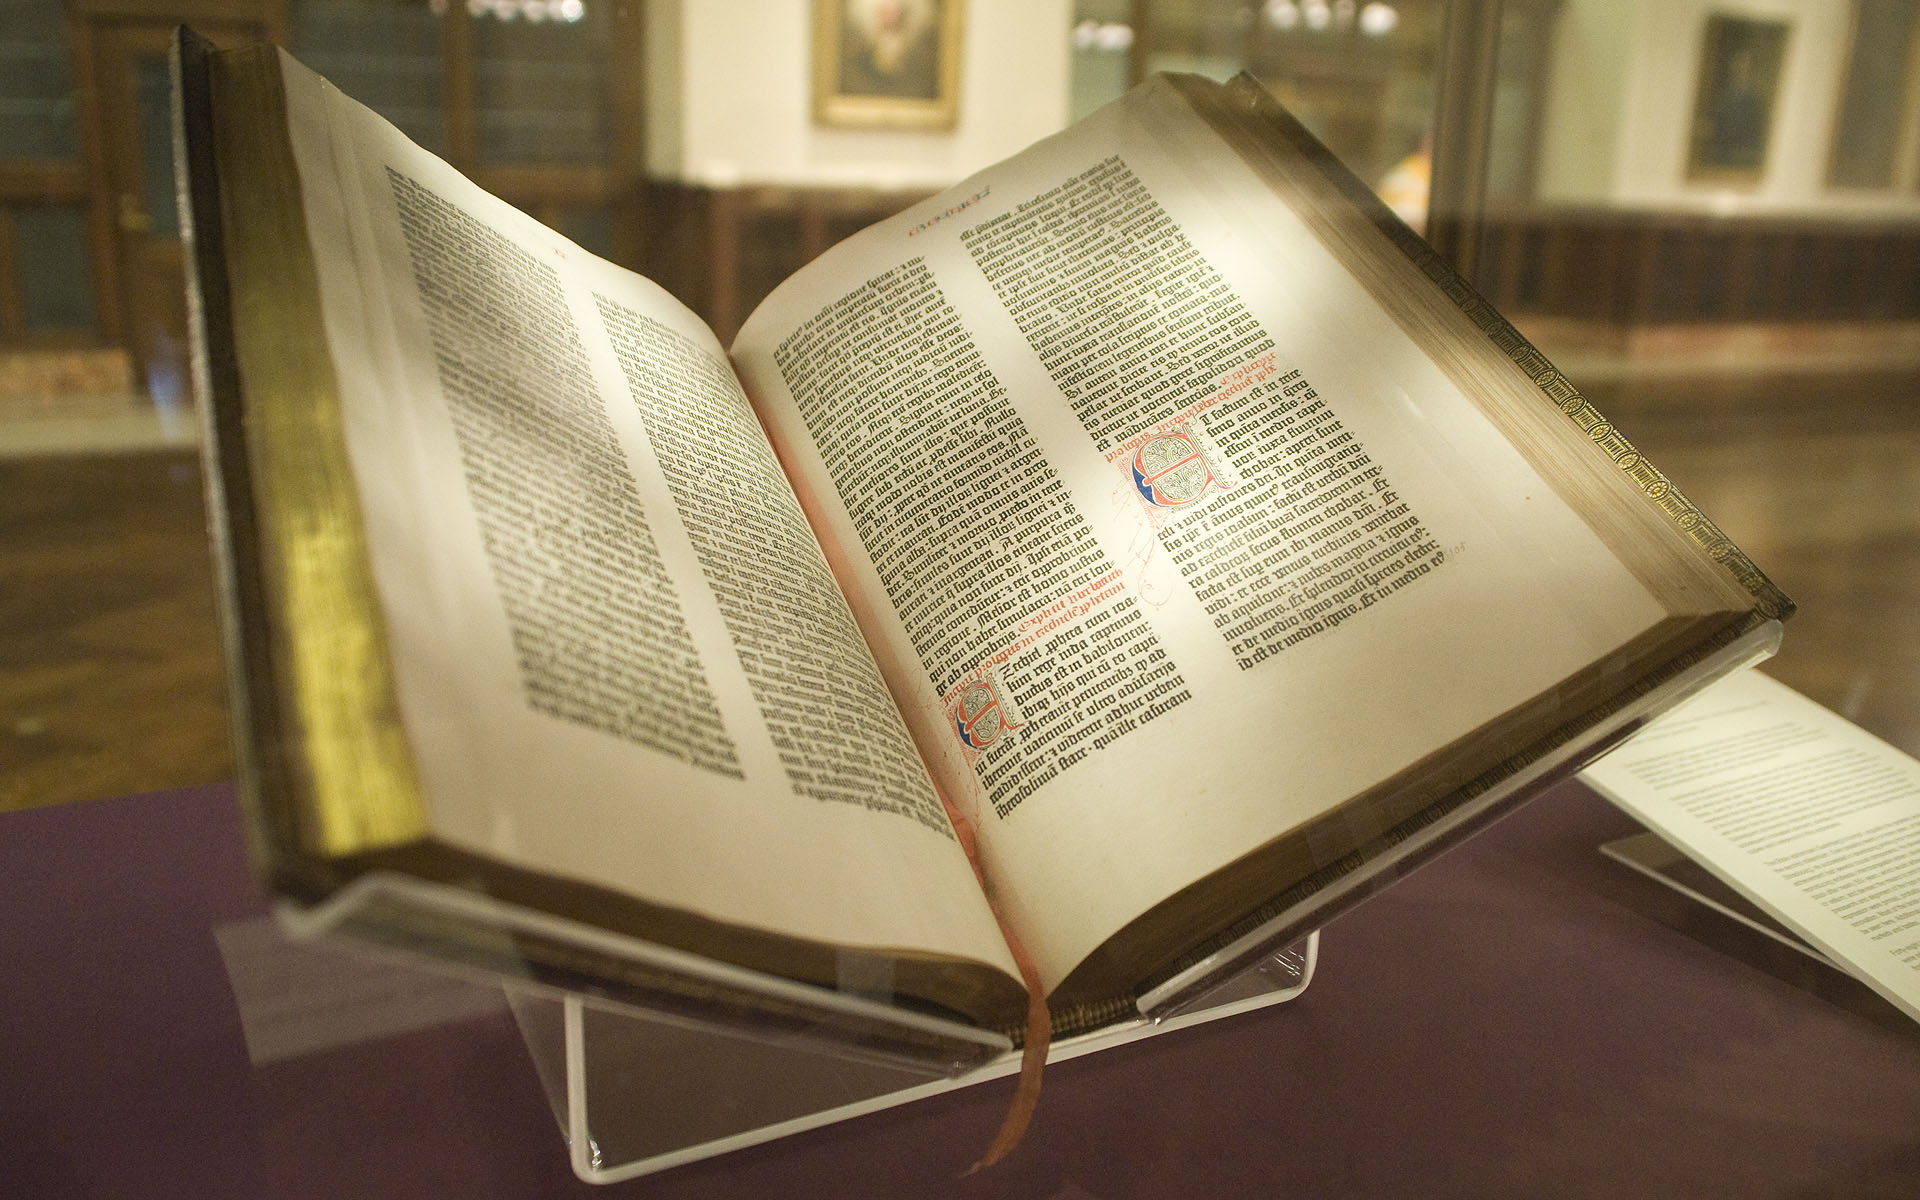 http://upload.wikimedia.org/wikipedia/commons/b/b6/Gutenberg_Bible%2C_Lenox_Copy%2C_New_York_Public_Library%2C_2009._Pic_01.jpg